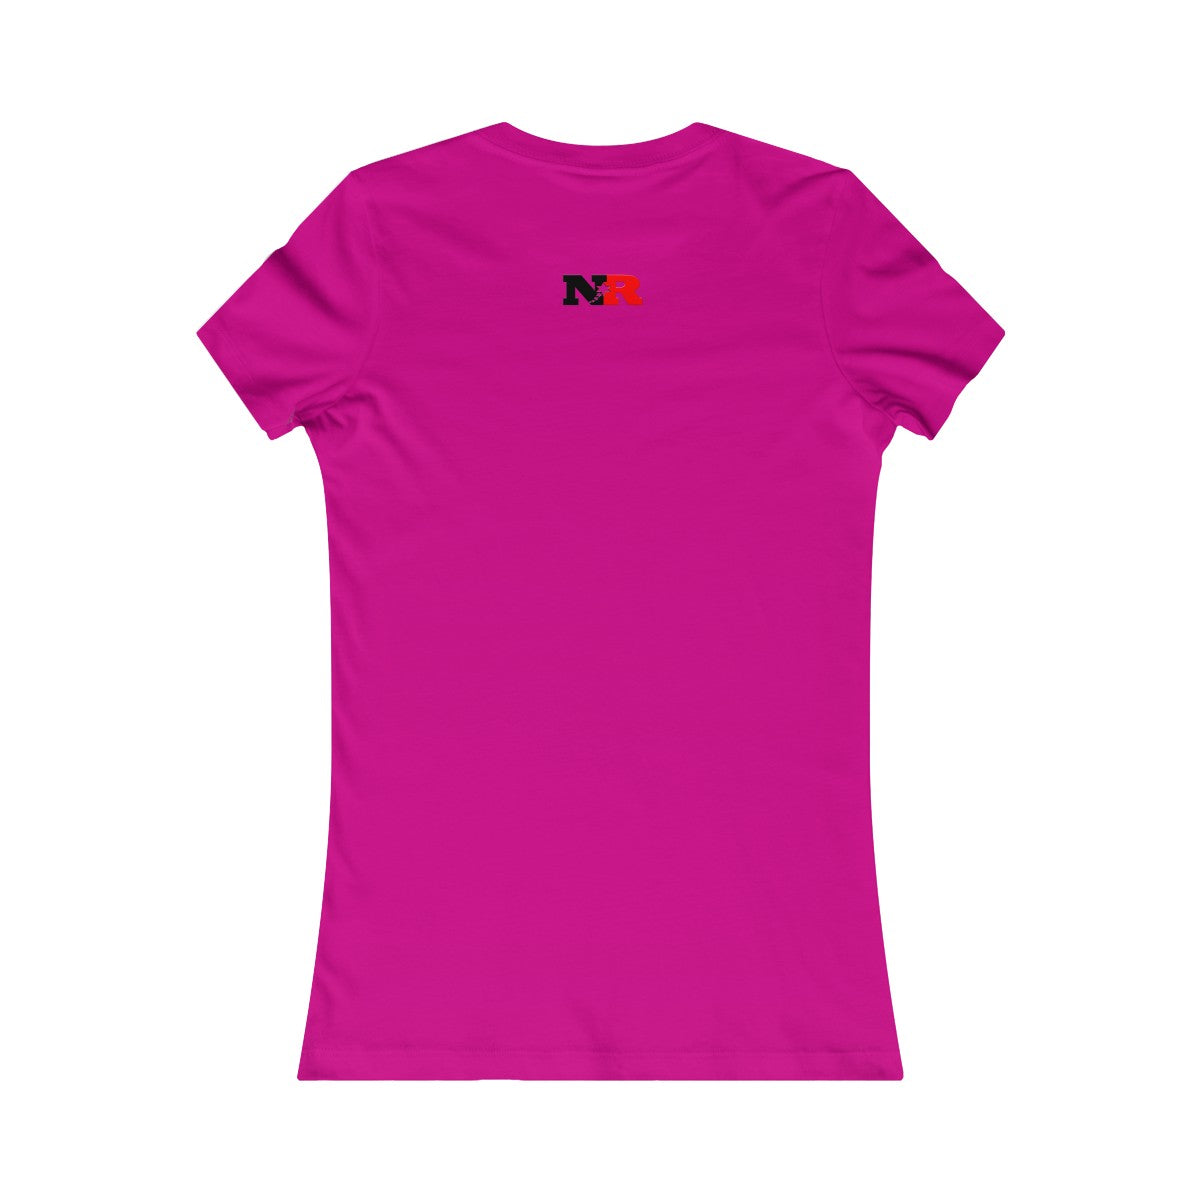 Women's Favorite Tee - High Priest